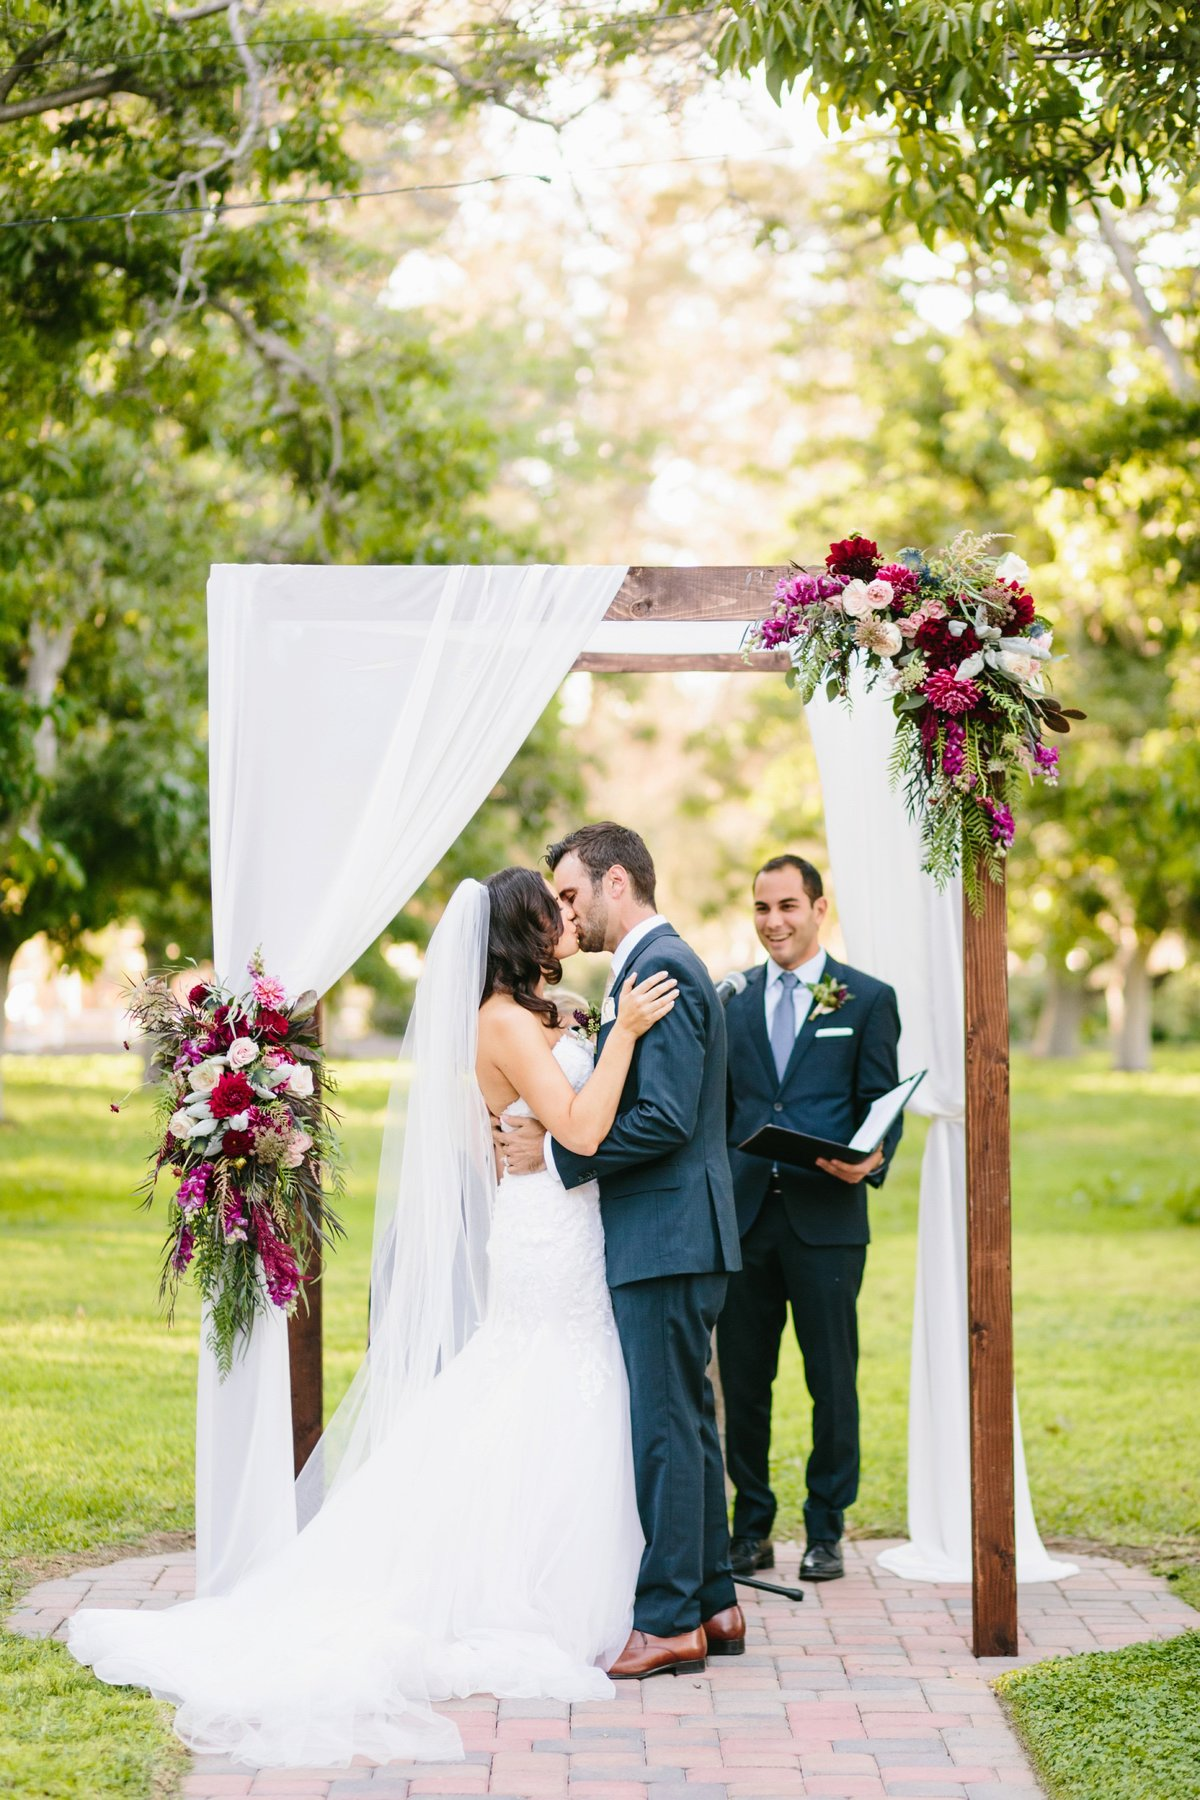 Best California Wedding Photographer-Jodee Debes Photography-154